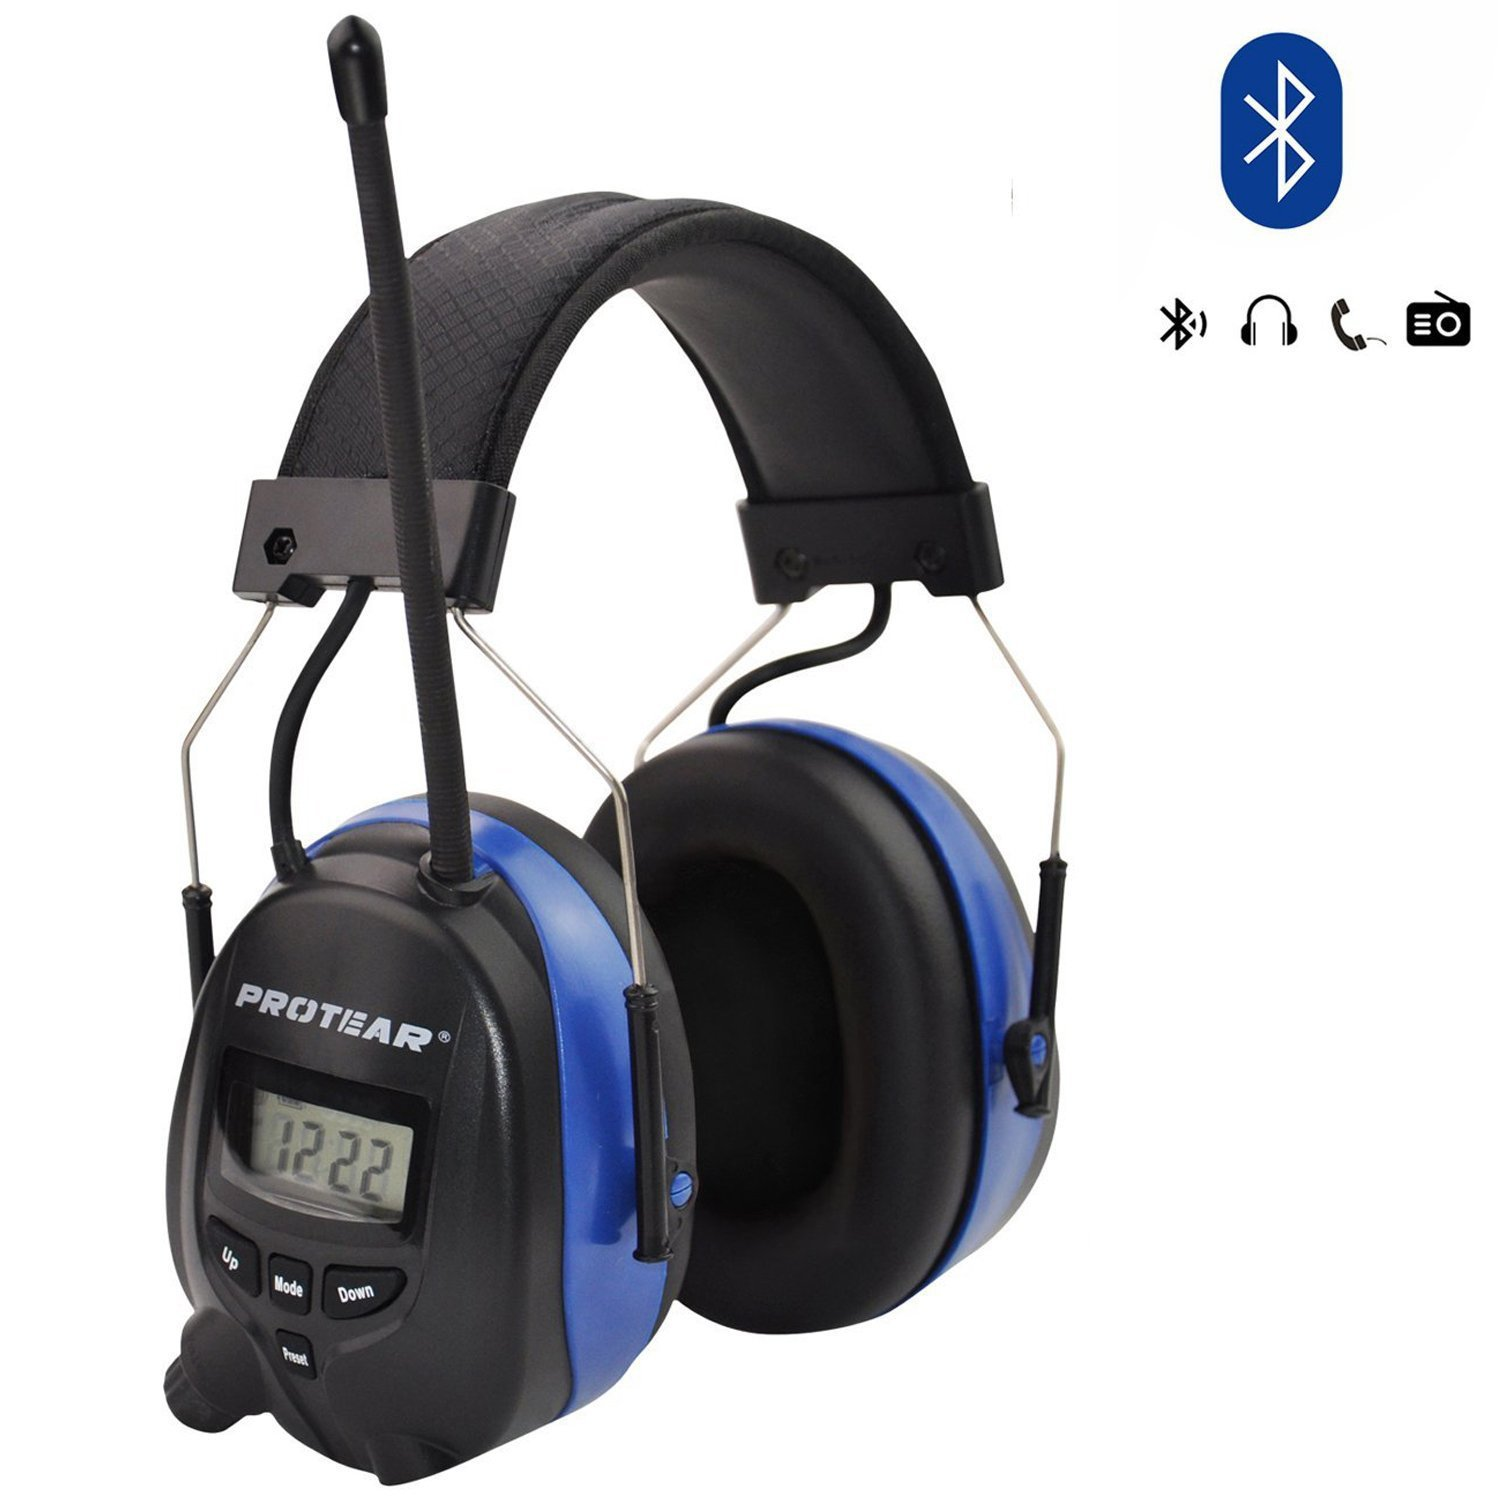 Bluetooth Wireless Noise Cancelling Headphones, AM/FM Radio Safety Earmuffs for Working/Mowing, NRR 25dB Ear Protector, with Built-in Mic, Blue